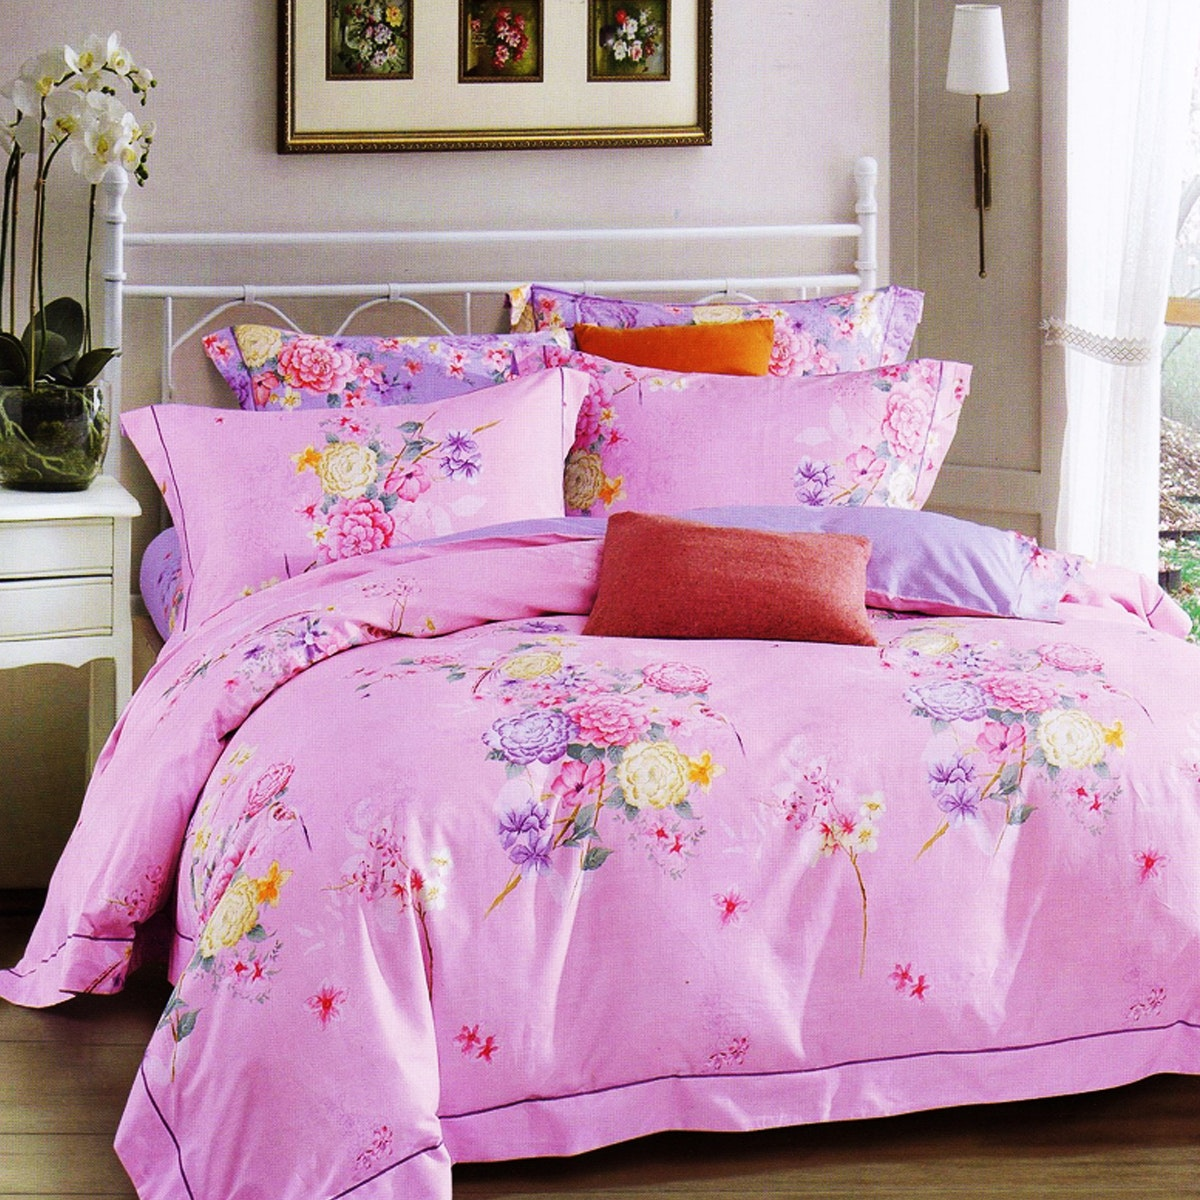 Sleep Buddy Set Sprei dan Bed Cover Sweetest Flower Cotton Sateen 160x200x30